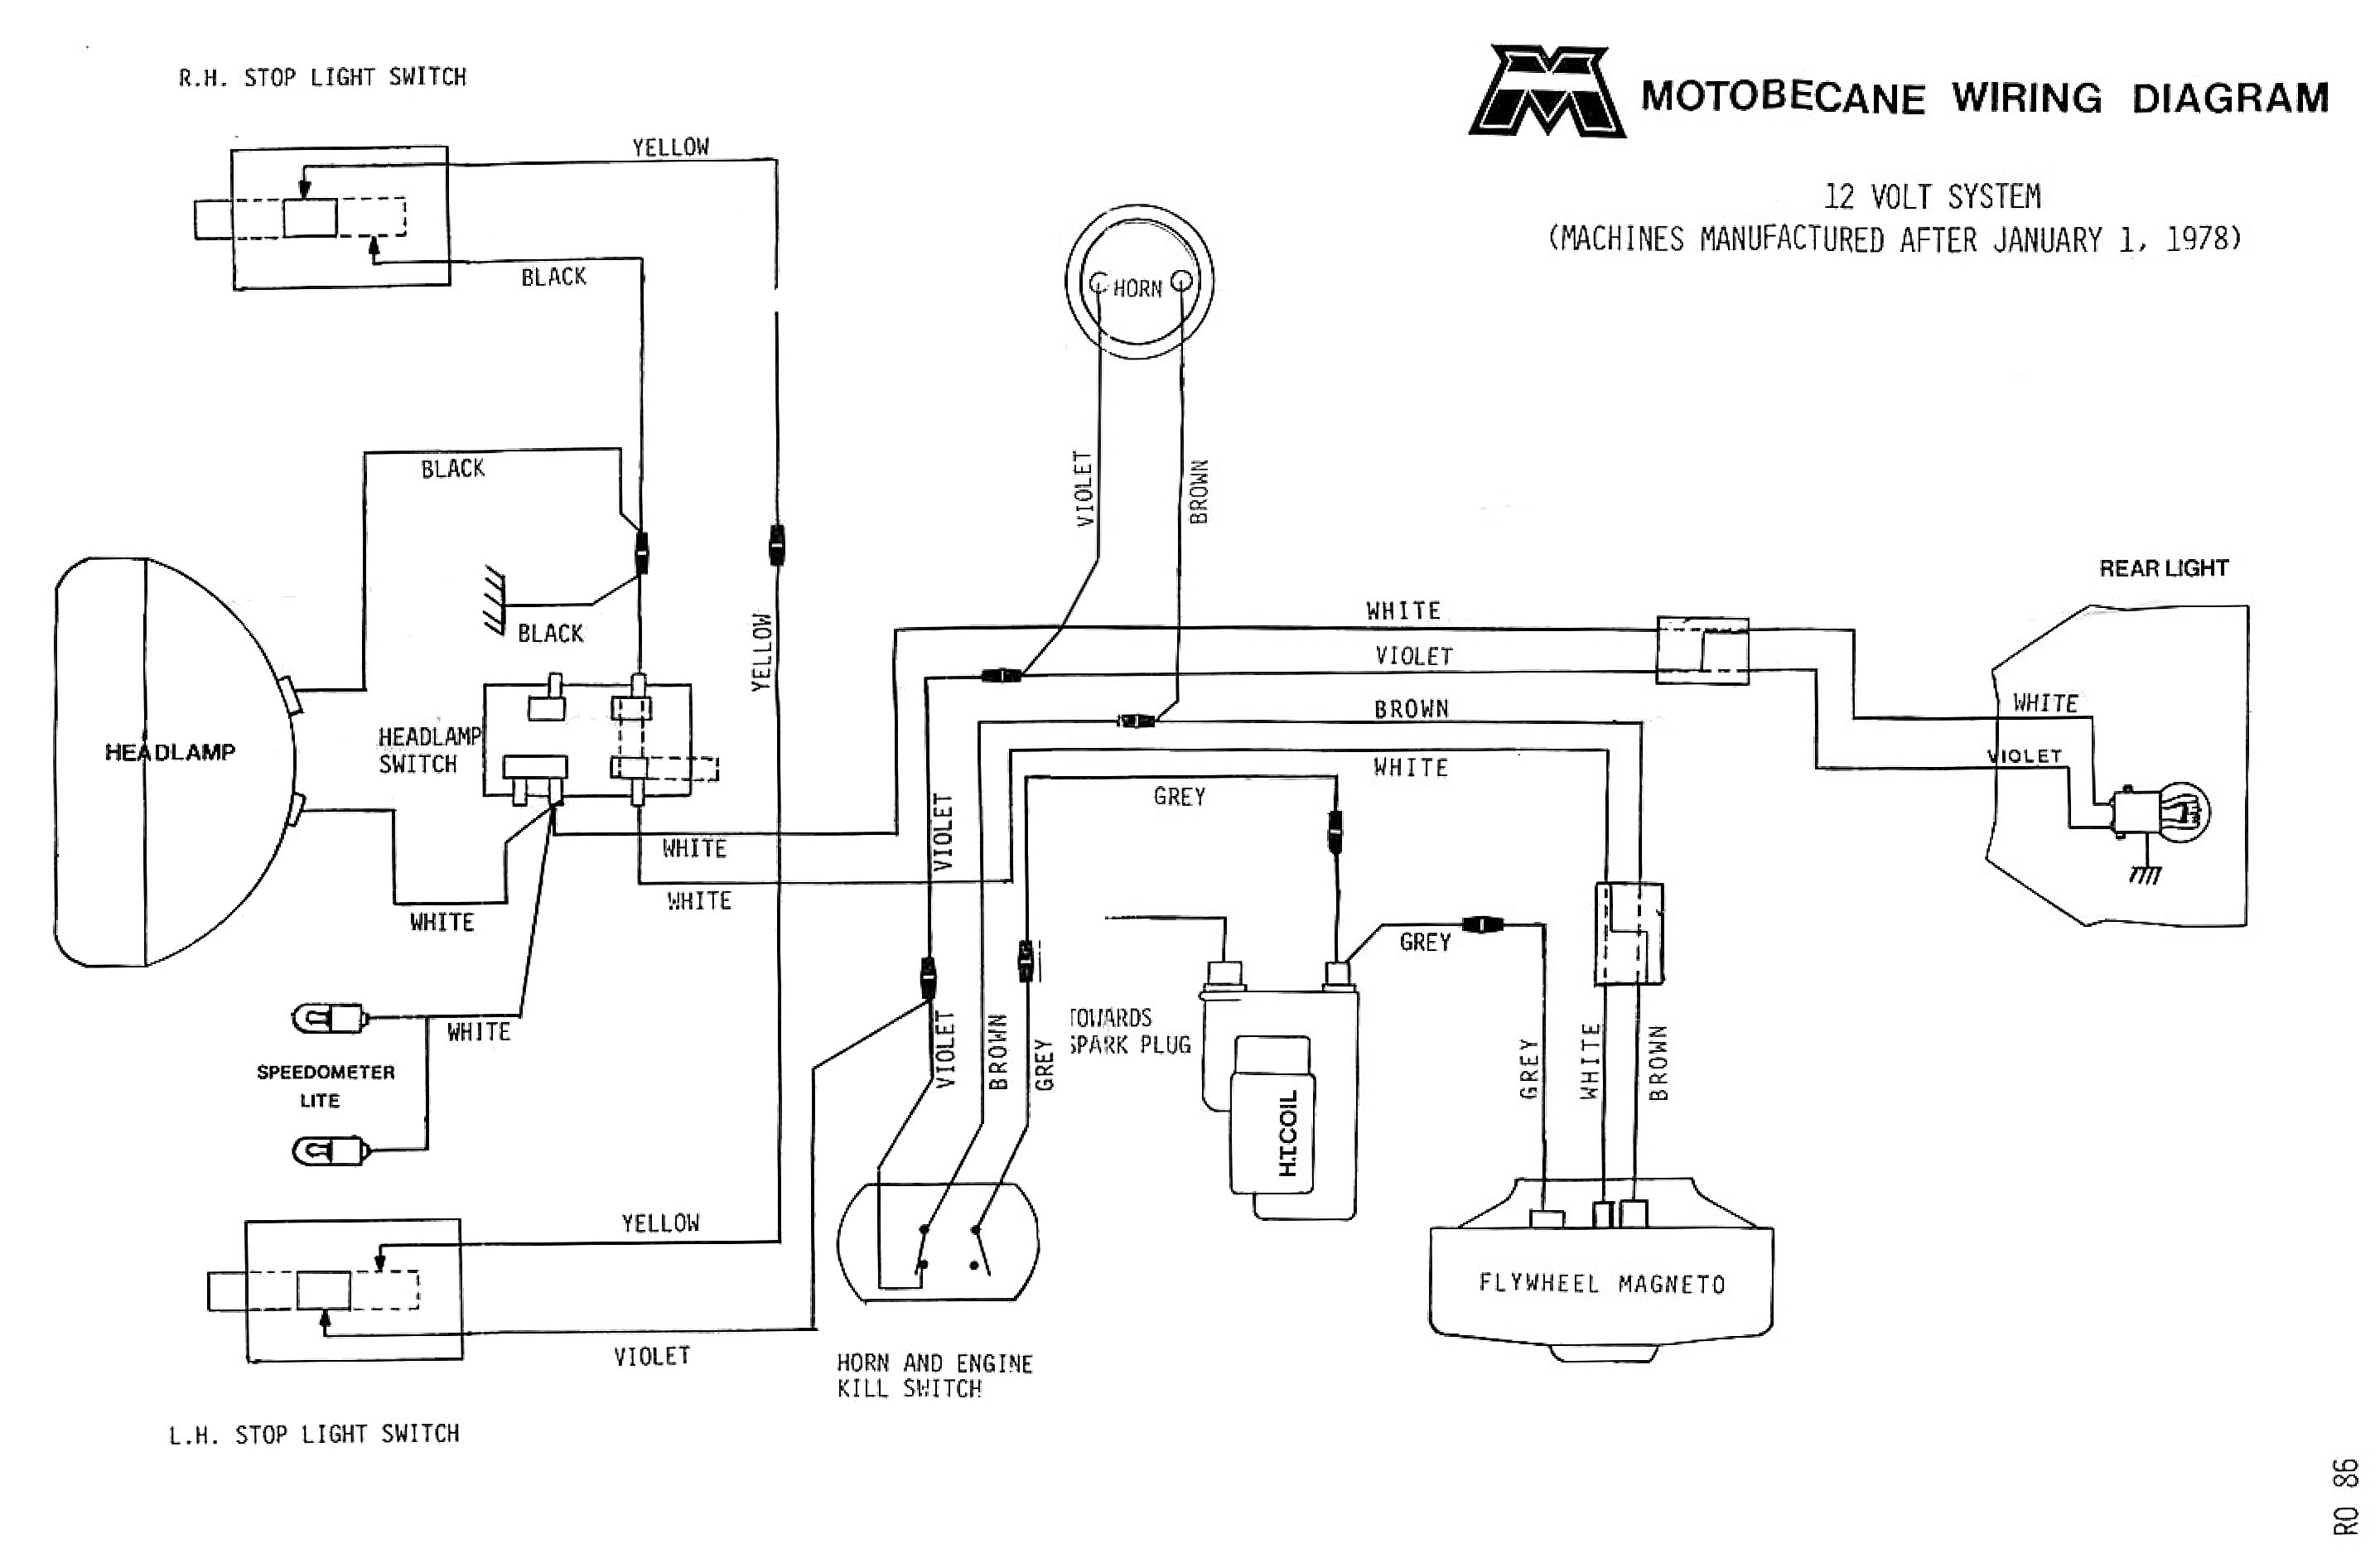 [DIAGRAM_1JK]  1953 Ford Naa Tractor Wiring Diagram - Peterbilt 379 Light Wiring Diagram  for Wiring Diagram Schematics | 1954 Ford 8n Wiring Diagram |  | Wiring Diagram Schematics